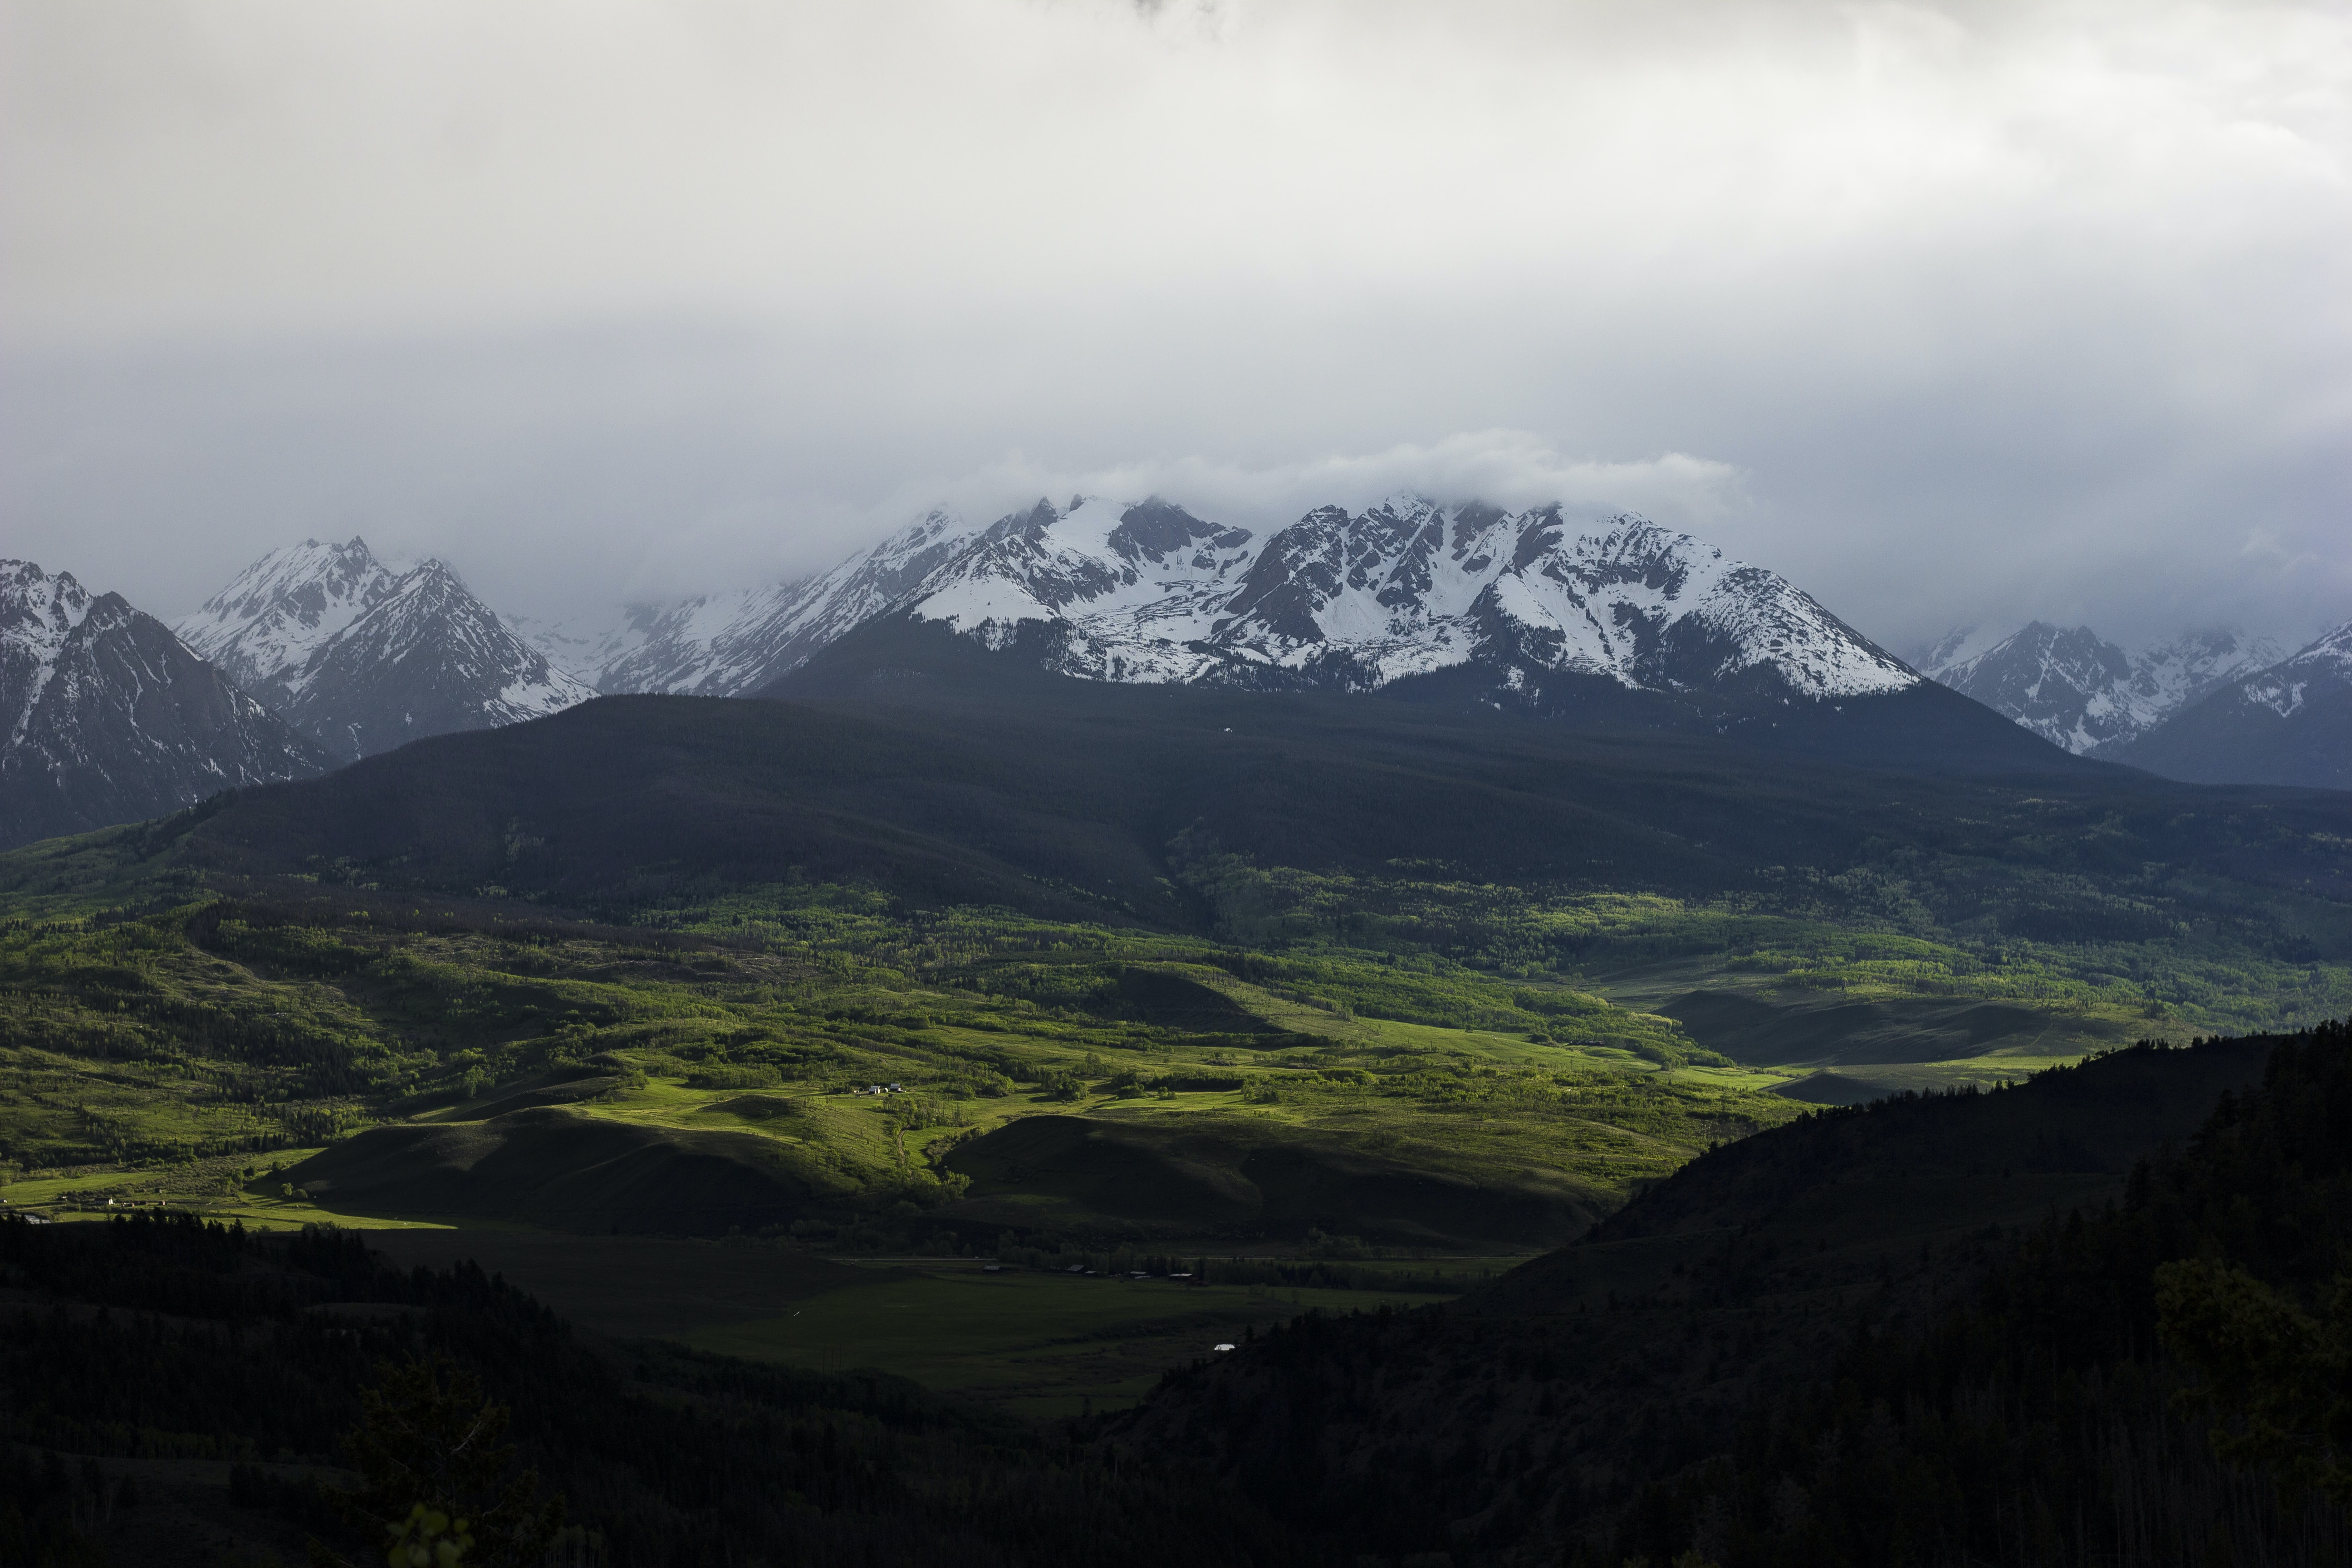 panoramic photo of glacier mountain above forest